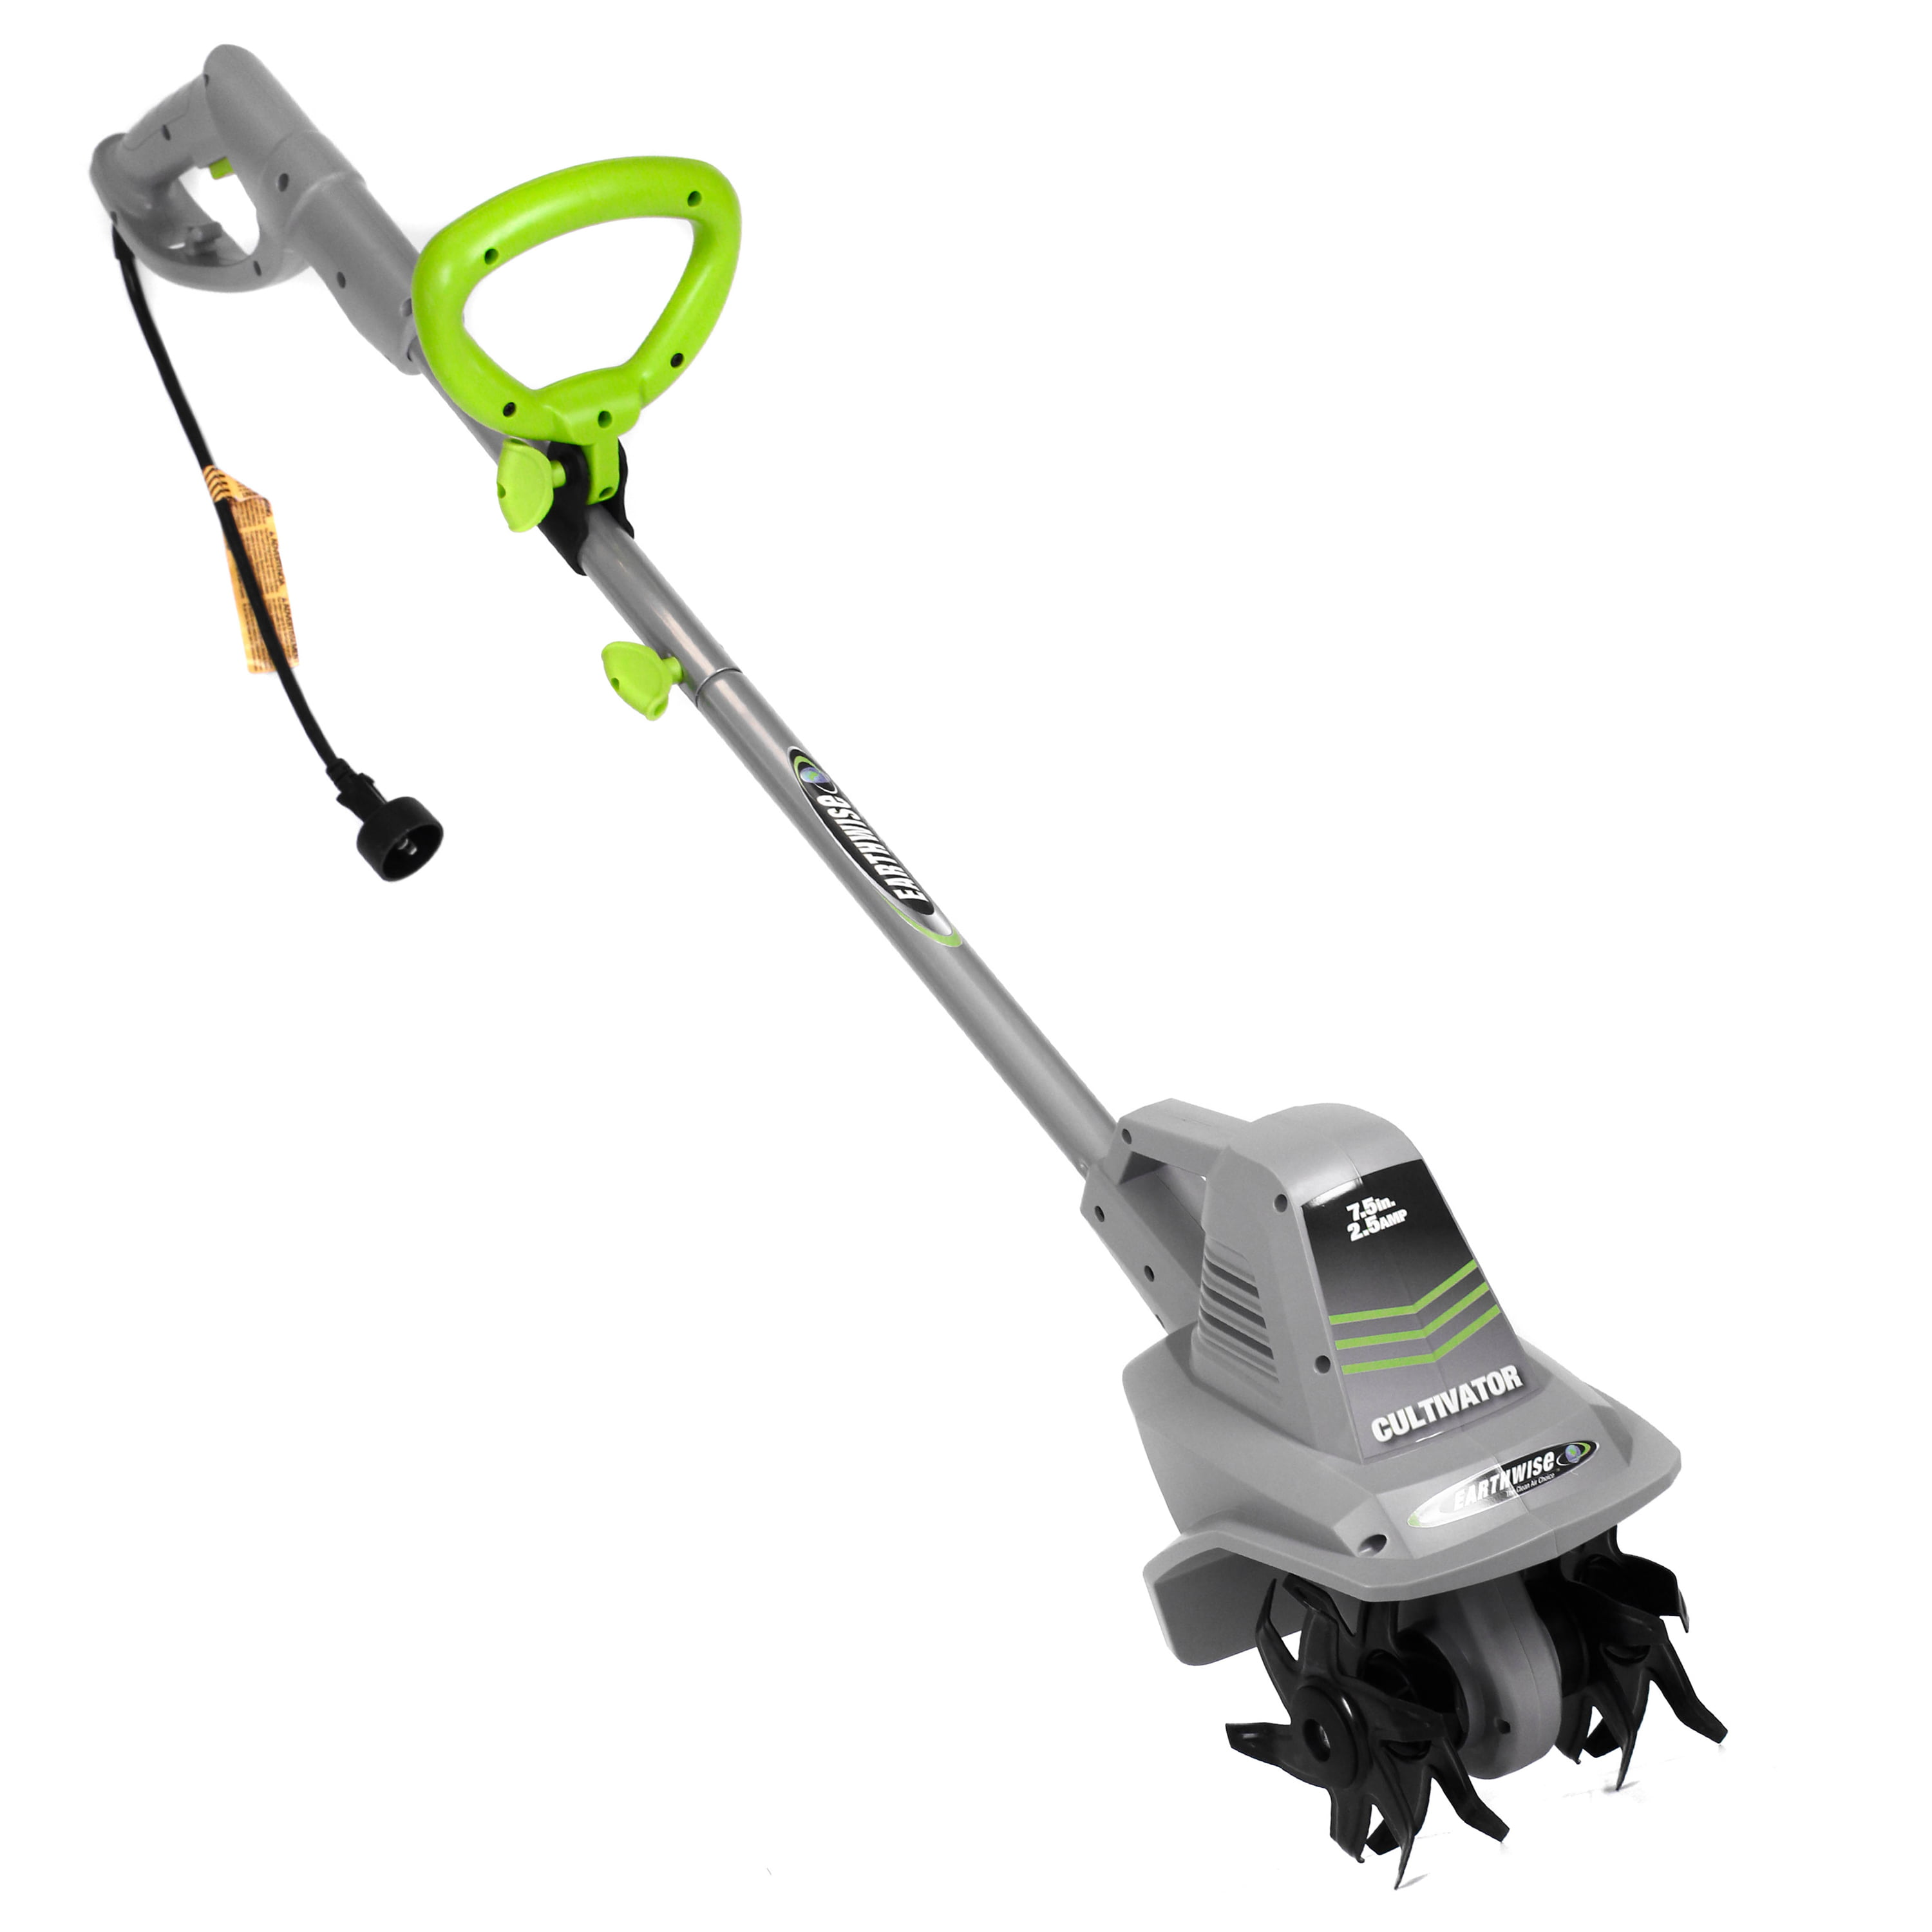 Earthwise 7 5 Wide 2 Amp Motor Corded Electric Tiller Cultivator Tc70025